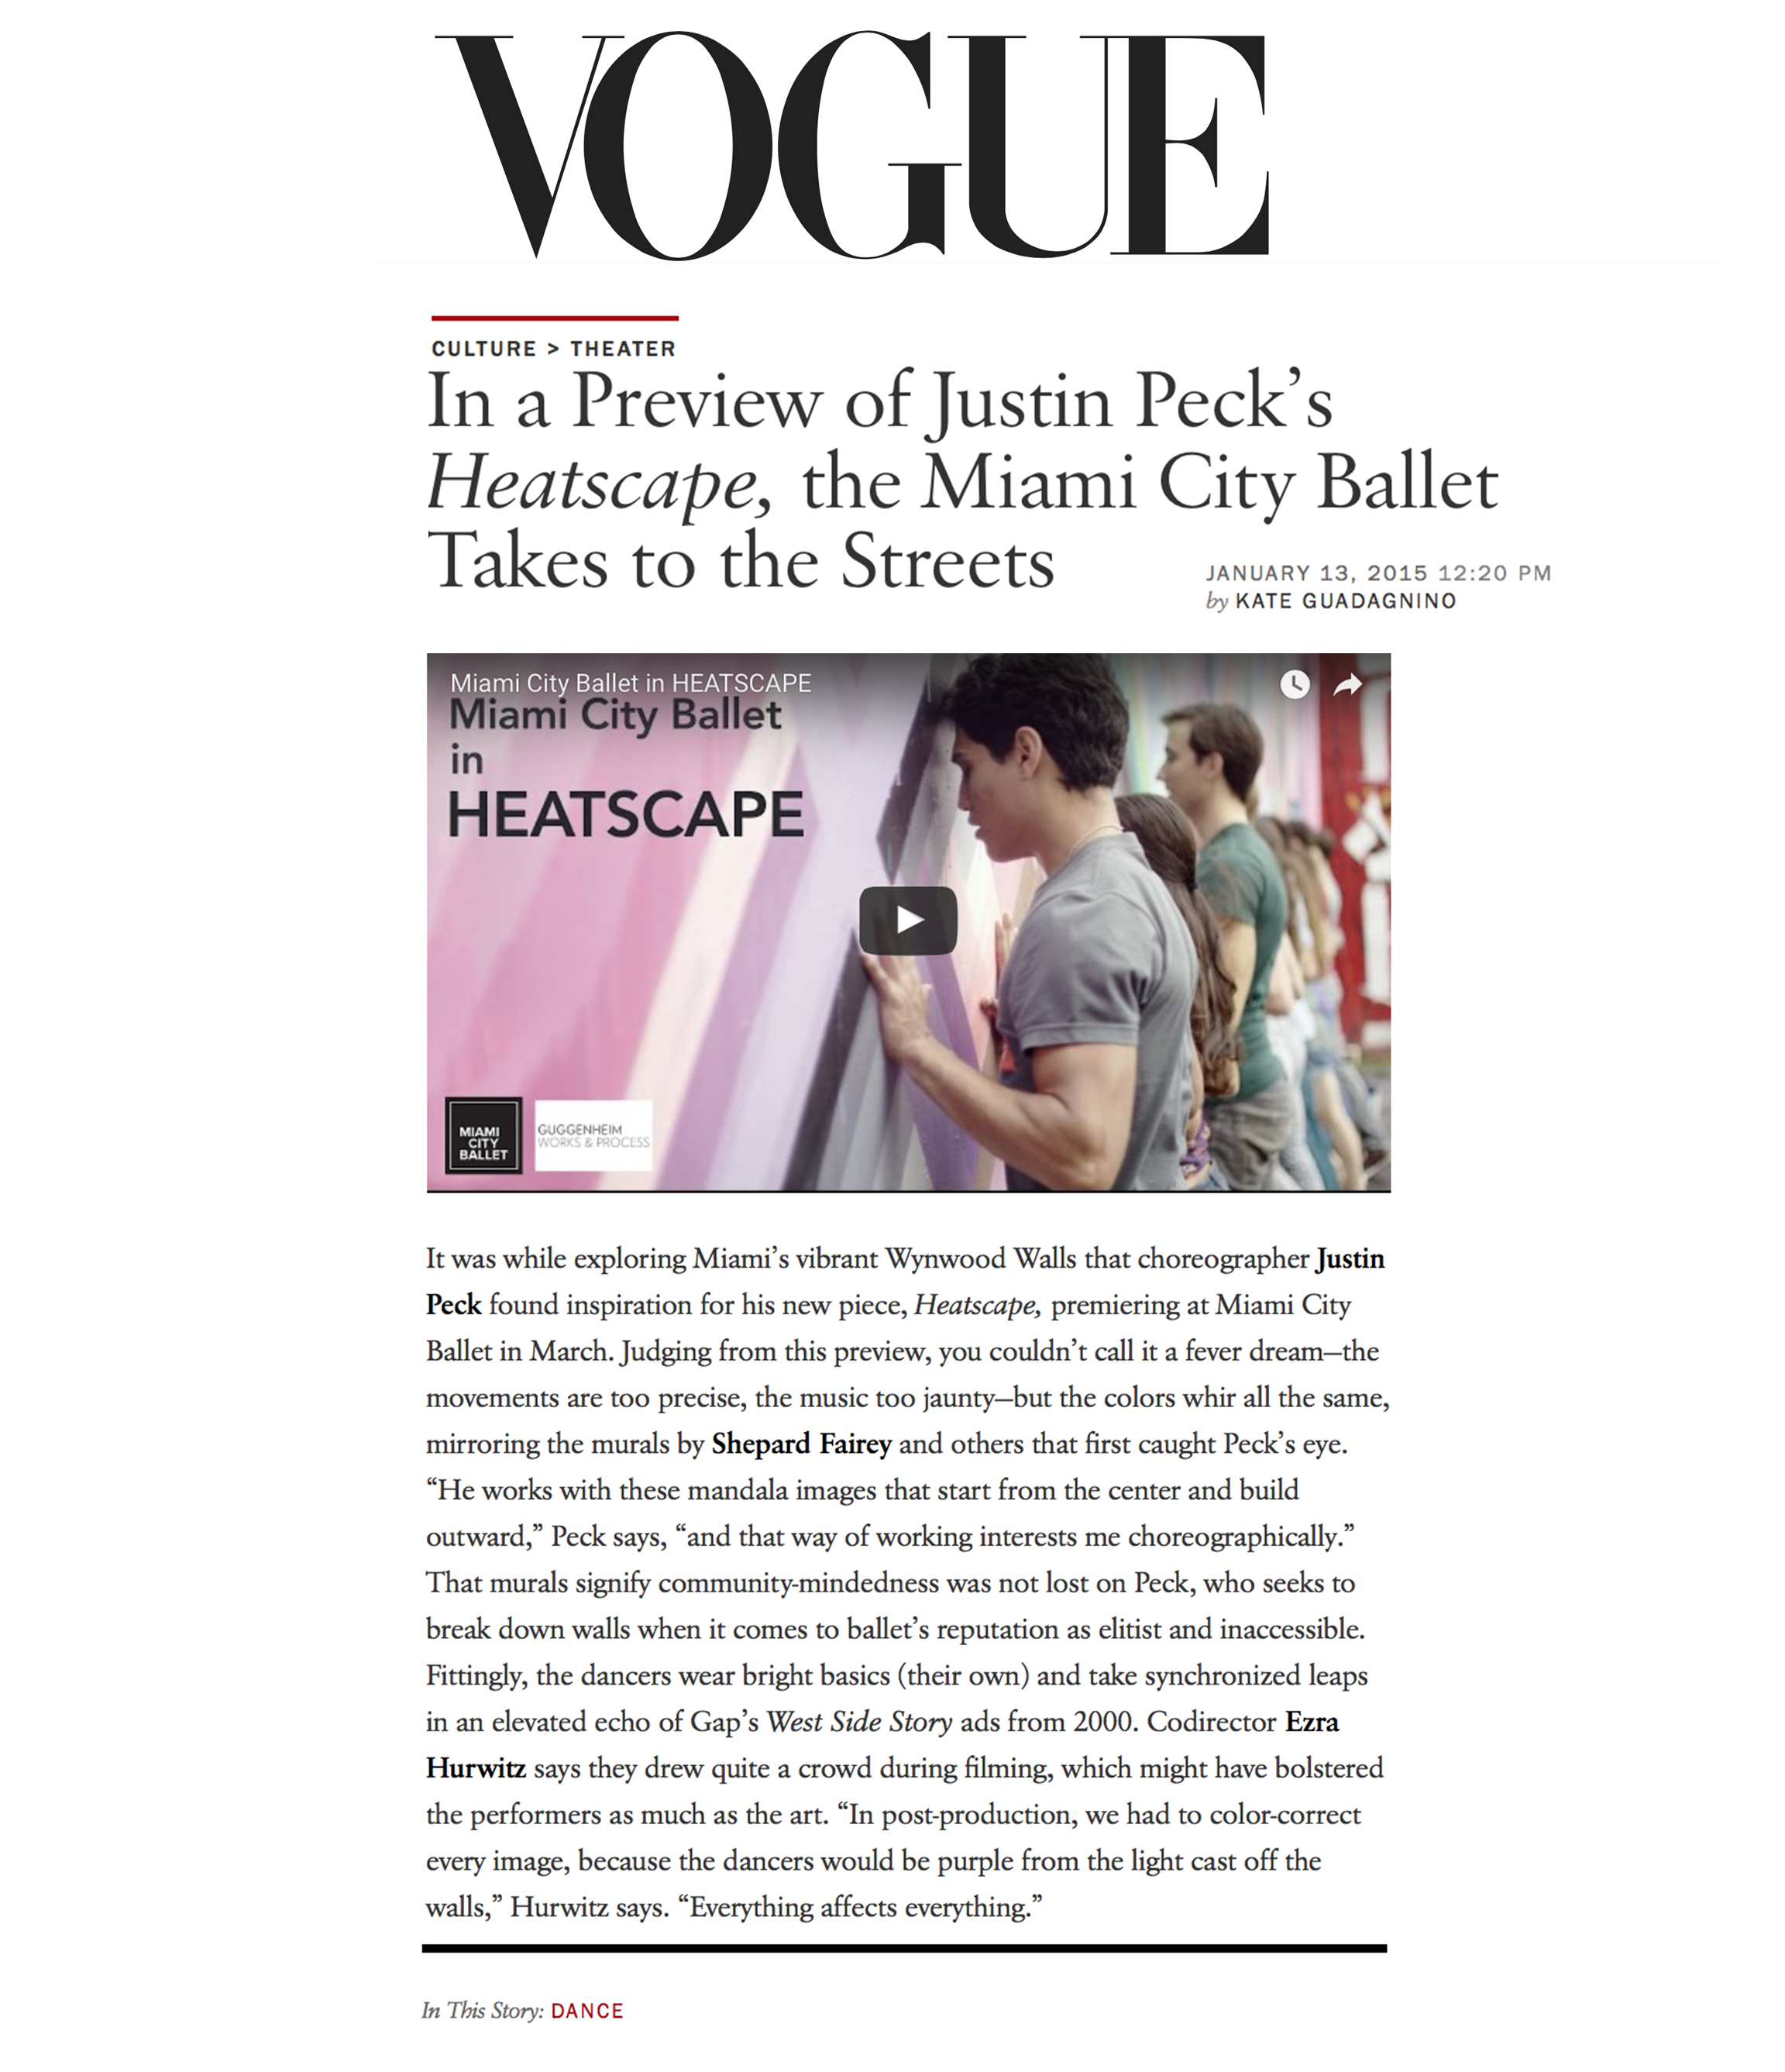 See the article on Vogue.com